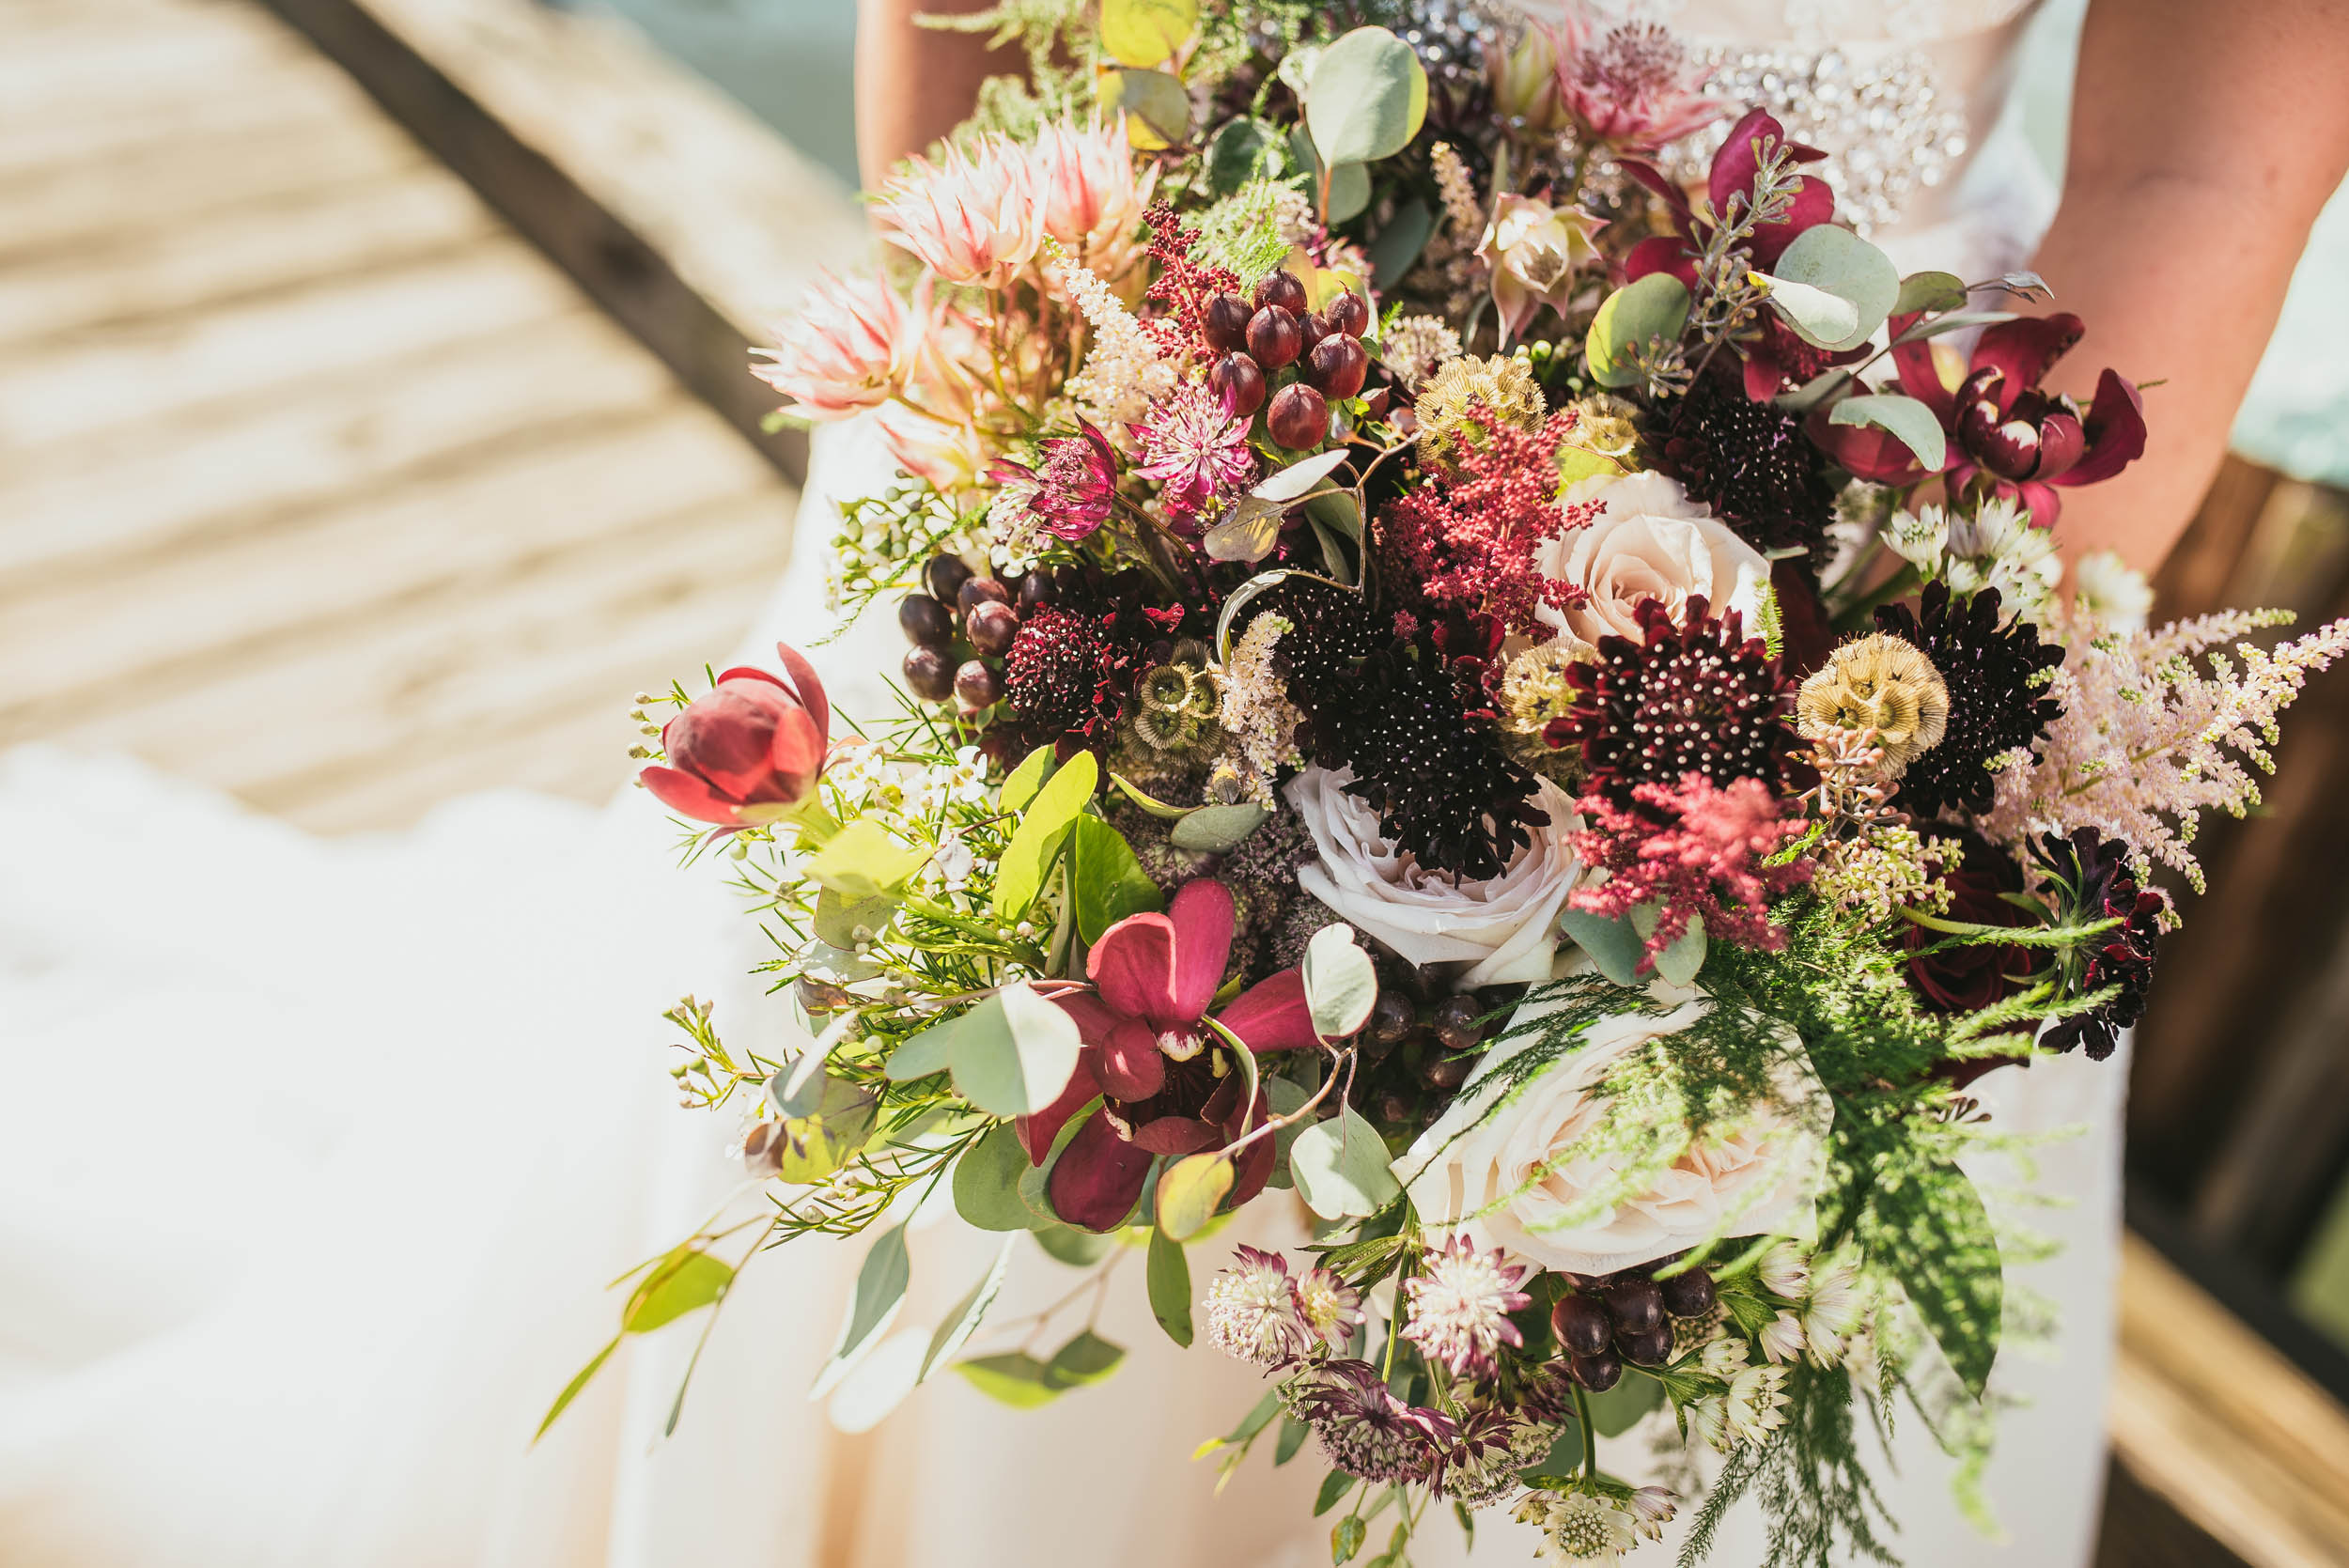 hengstenbergs-florist-kate-andrew-©in-focus-nyc-photography-01.jpg